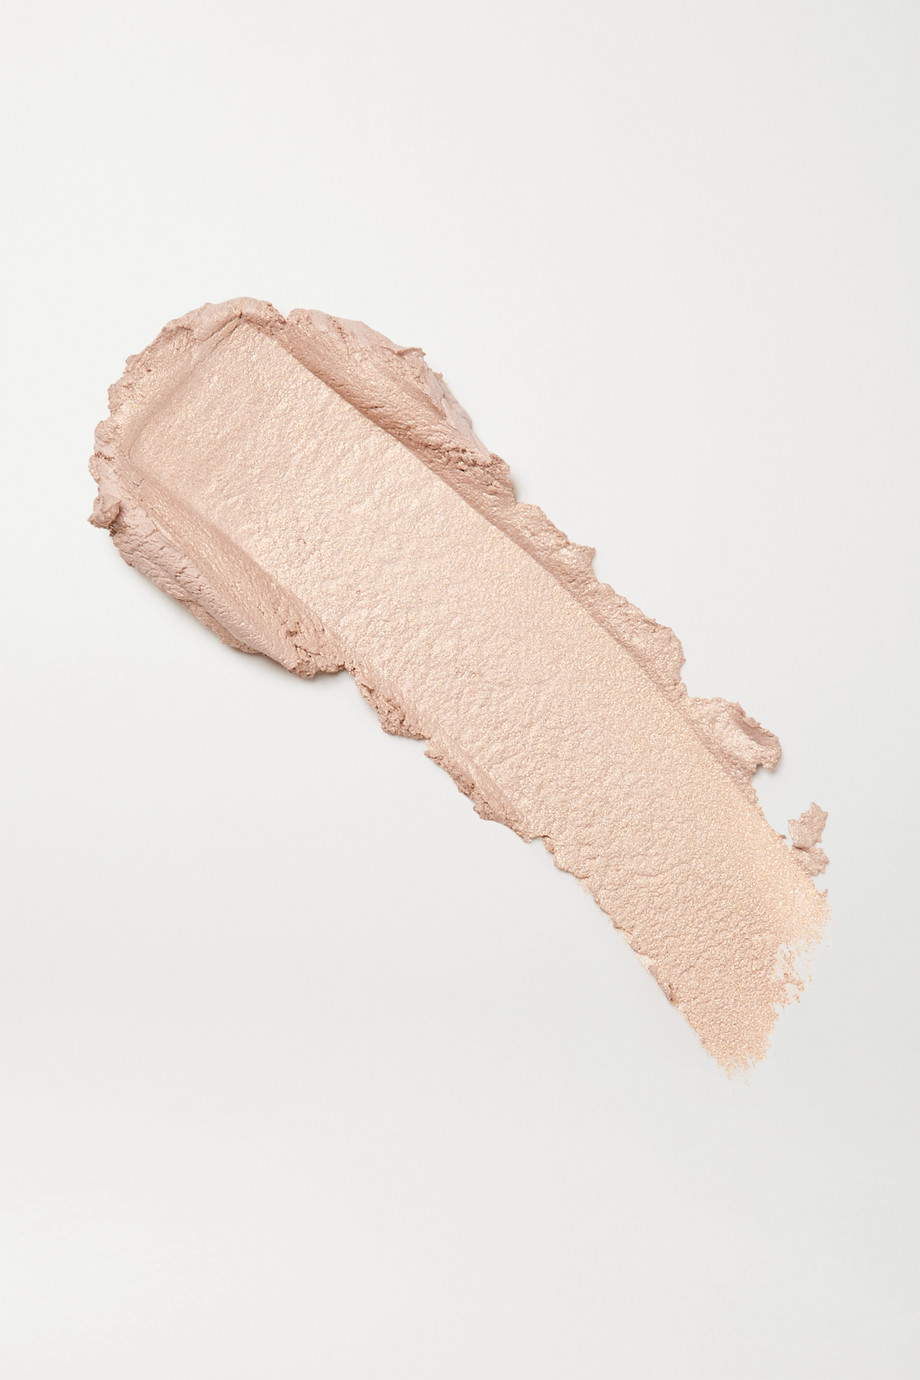 Supergoop! Shimmershade Eyeshadow SPF30 - First Light